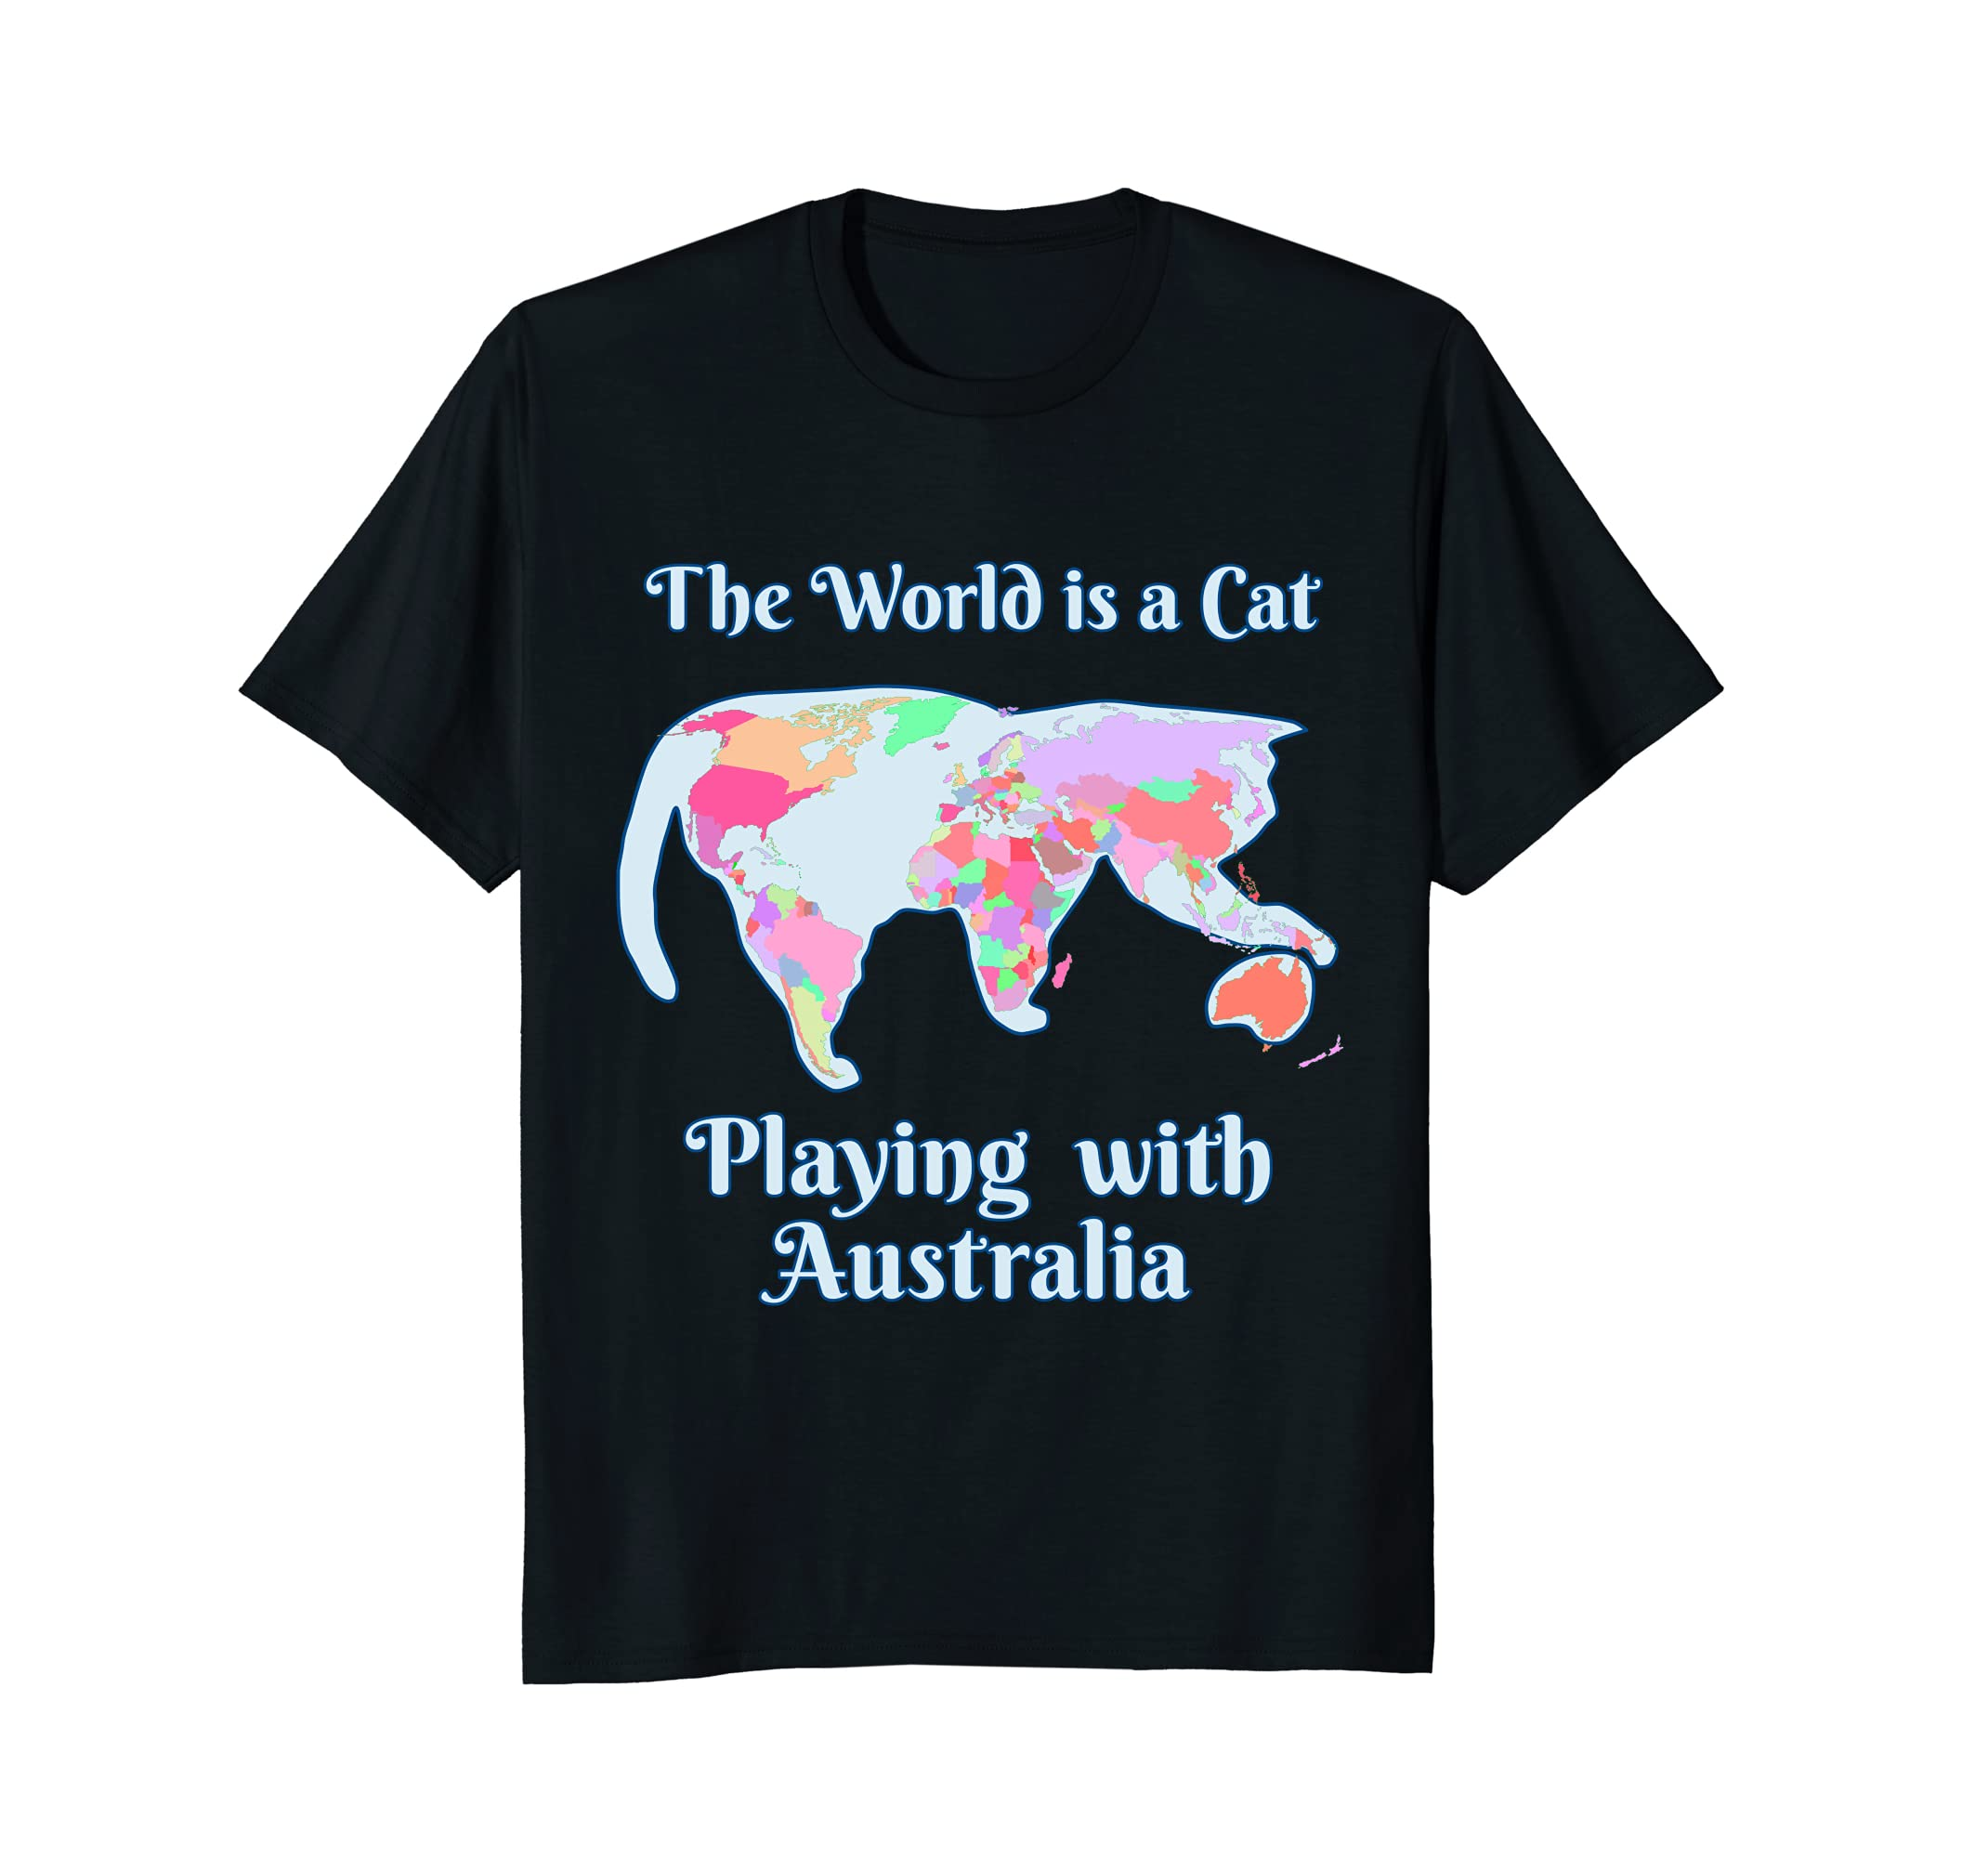 Funny world is a cat playing map t shirt for women and kids funny world is a cat playing map t shirt for women and kids gumiabroncs Images